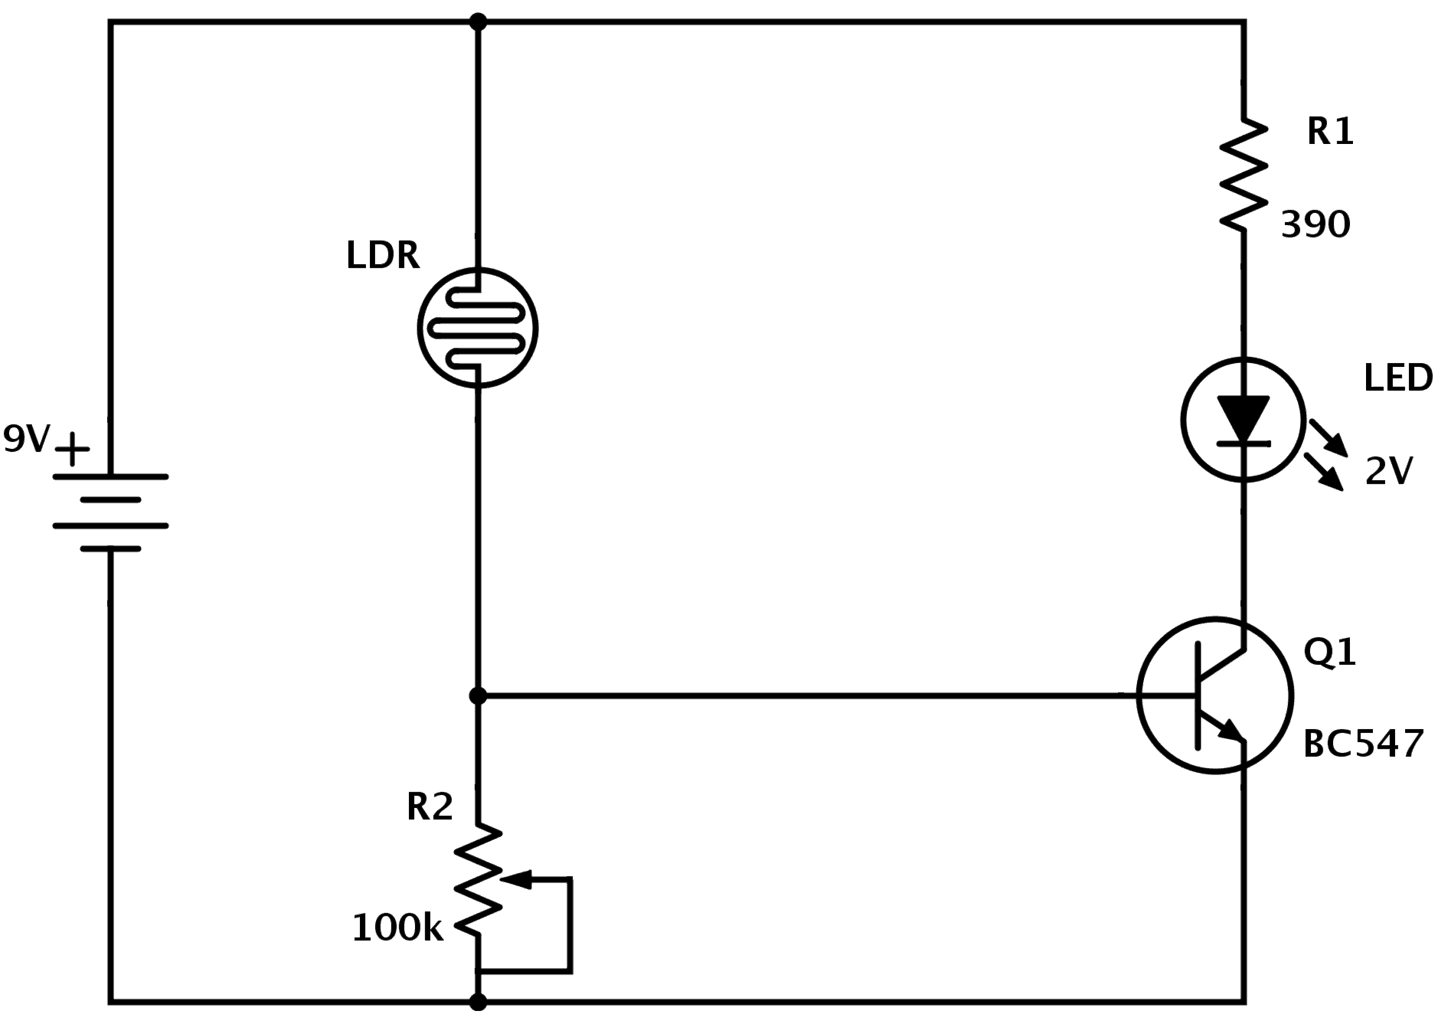 LDR circuit improved circuit diagram how to read and understand any schematic wiring circuits diagrams at mifinder.co